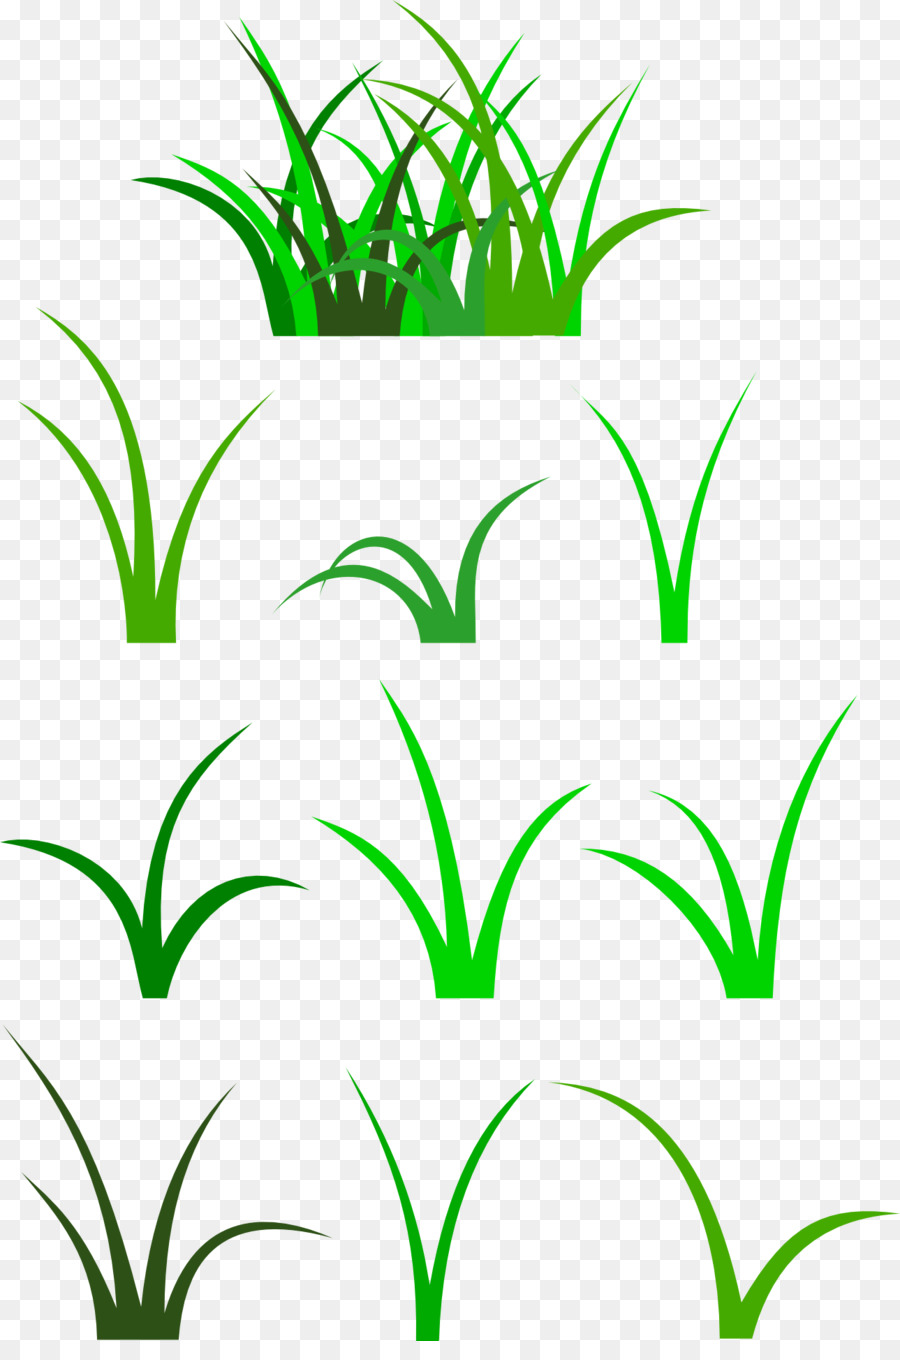 900x1360 Lawn Computer Icons Blade Clip Art